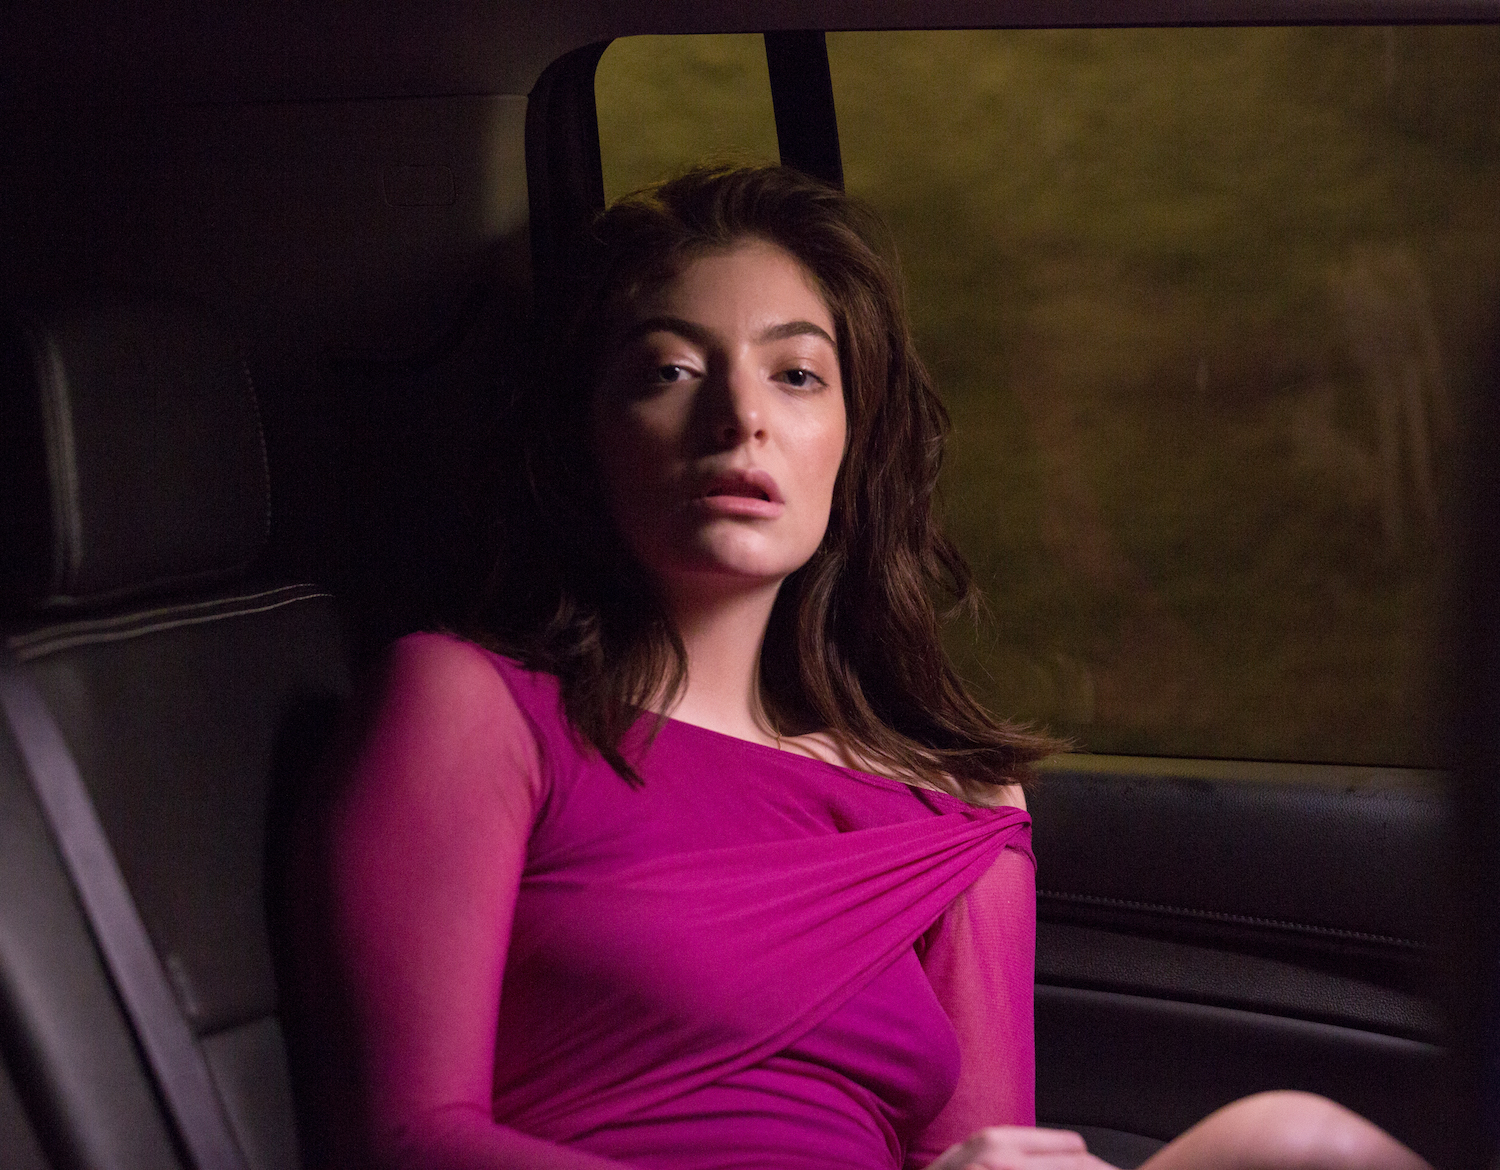 Lorde in the back of a car, looking directly into the camera.